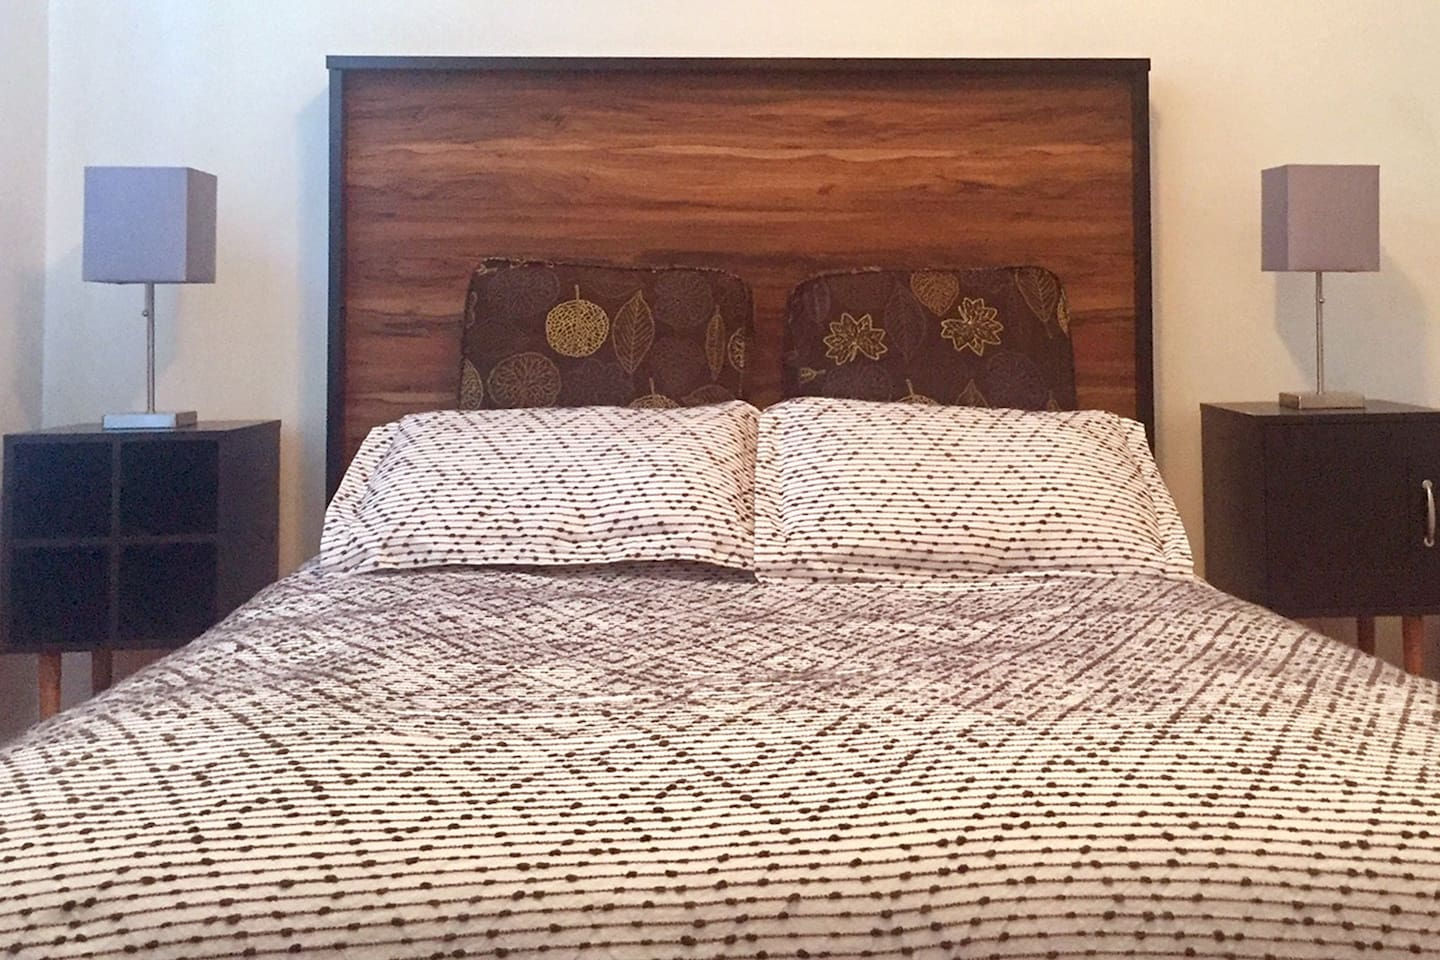 The guest room provides a relaxing environment with clean lines and elegant style. The bed is reportedly so comfortable- perfectly firm and supportive. It's a one-of-a-kind high quality mattress, hand made with 100% organic cotton and wool materials.